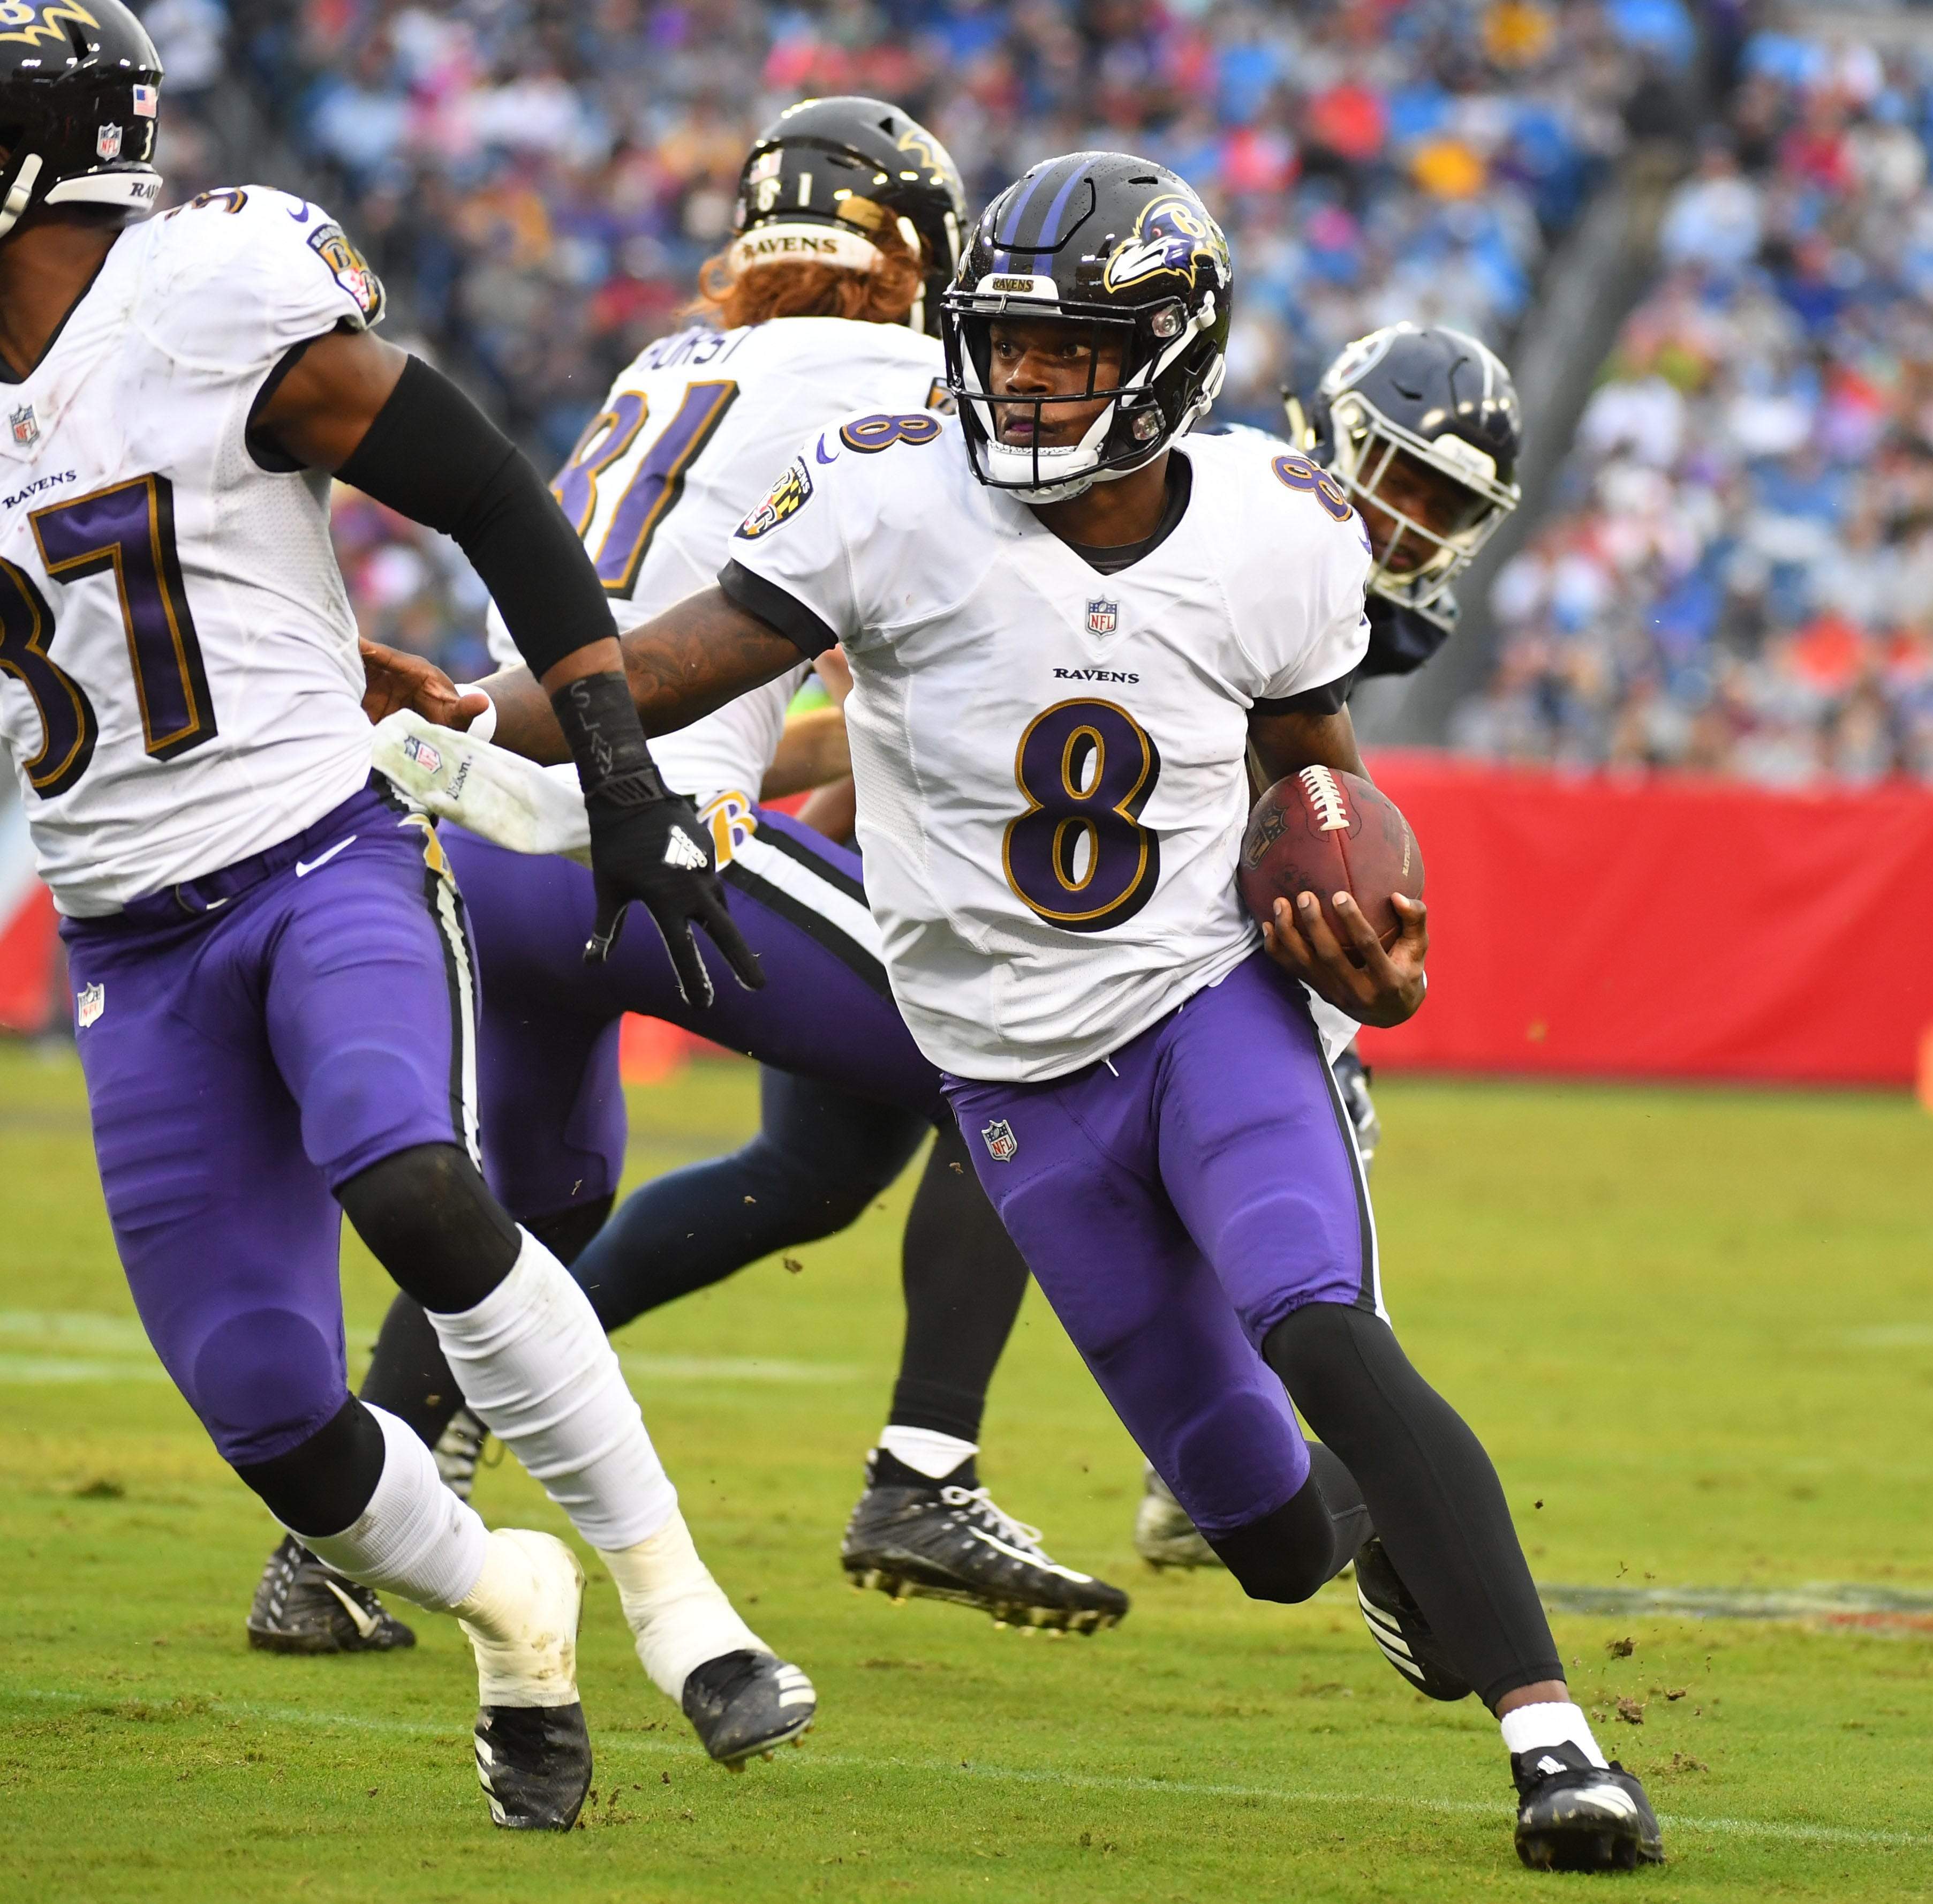 Watch: Lamar Jackson scores first NFL touchdown for Baltimore Ravens